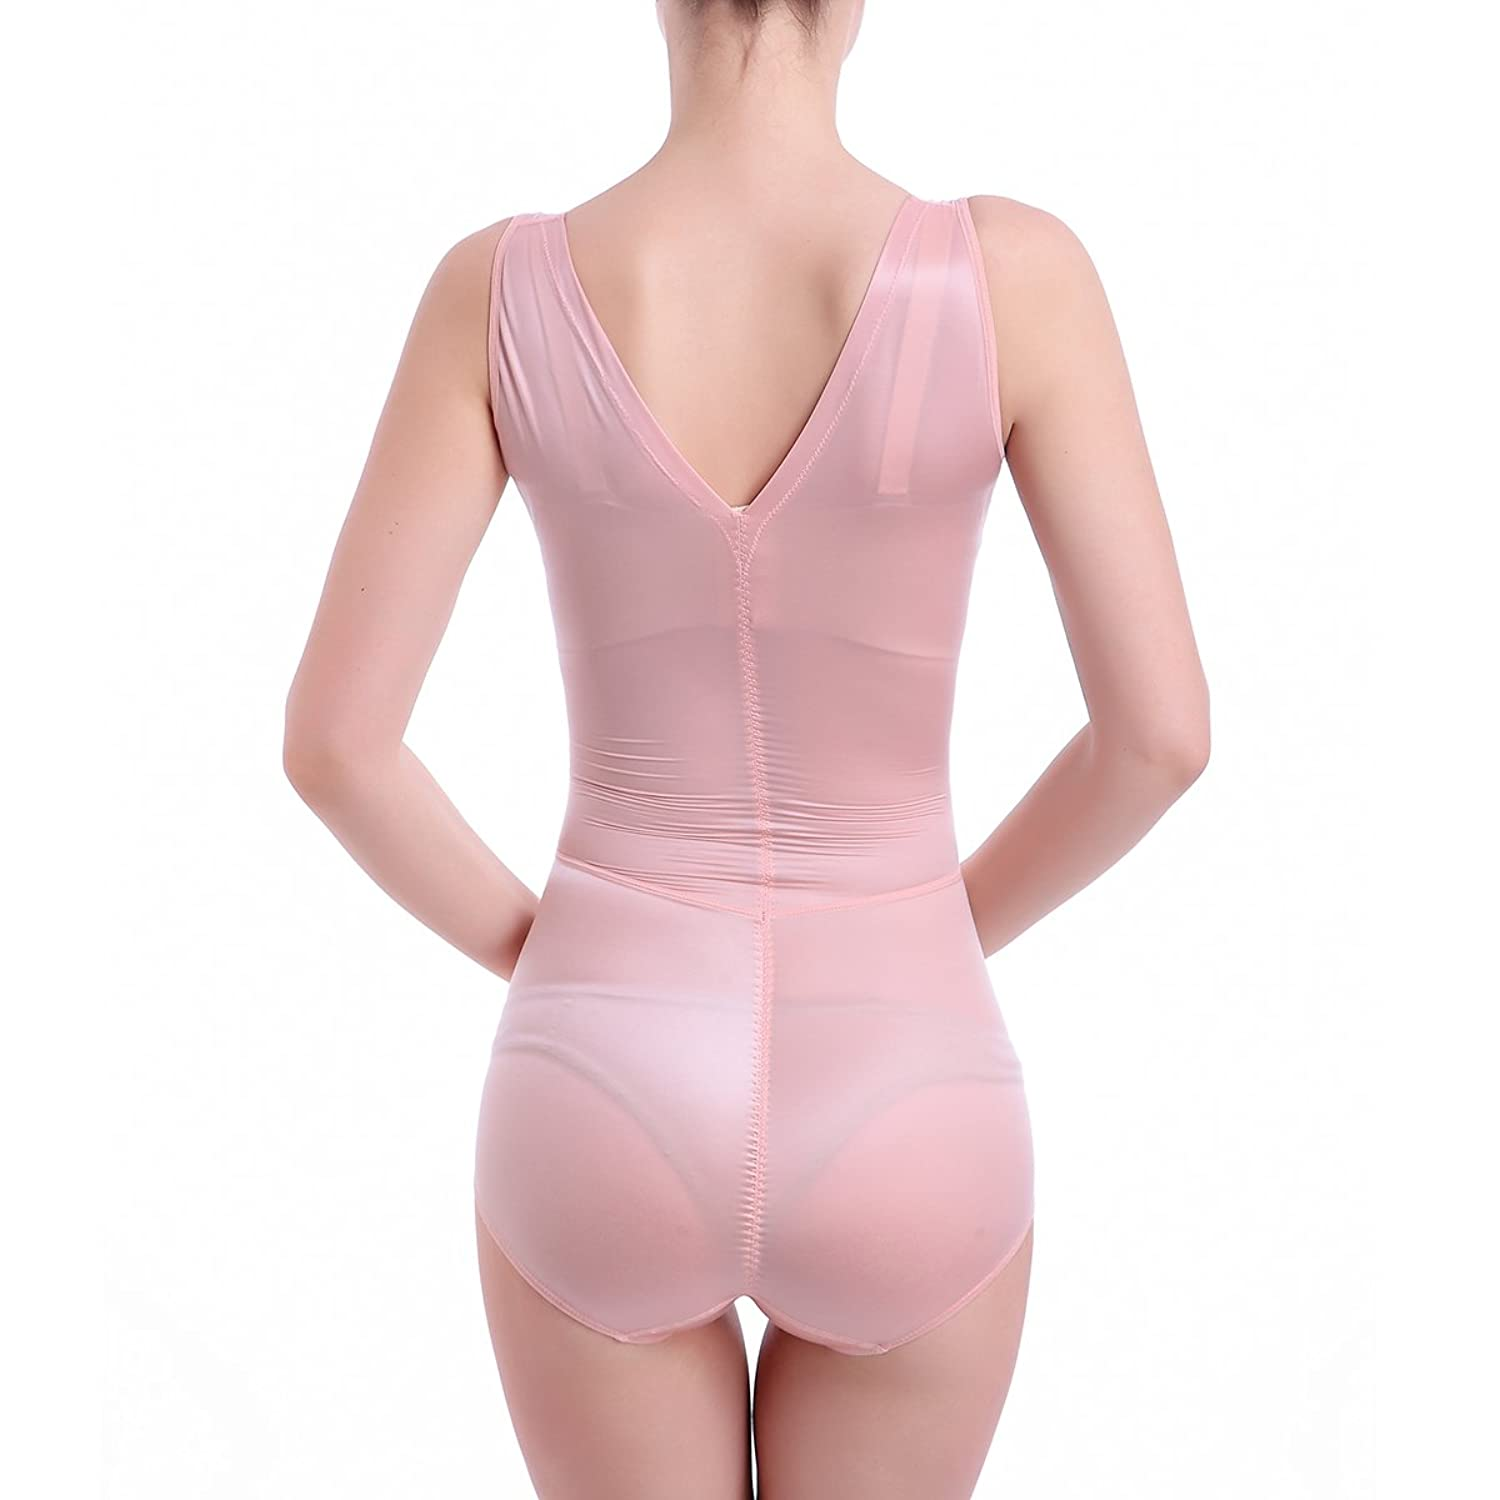 Shymay Women's Shapewear Bodysuit Seamless Tummy Slimming Firm Control Body Shaper